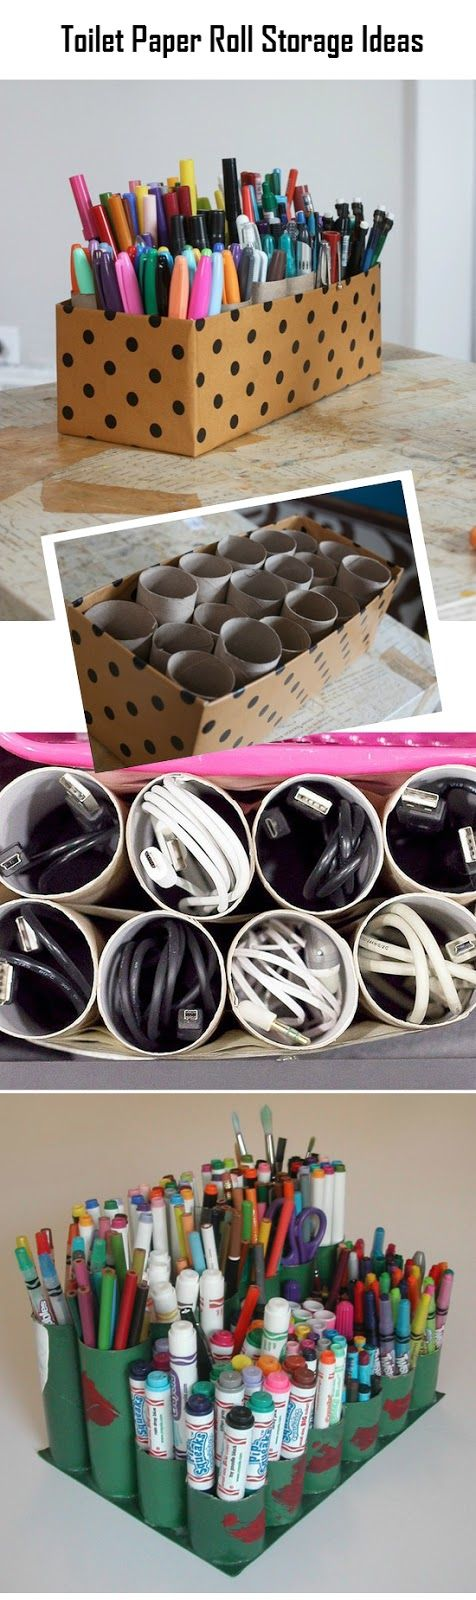 Toilet paper rolls toilet paper and toilets on pinterest for Diy toilet paper storage ideas